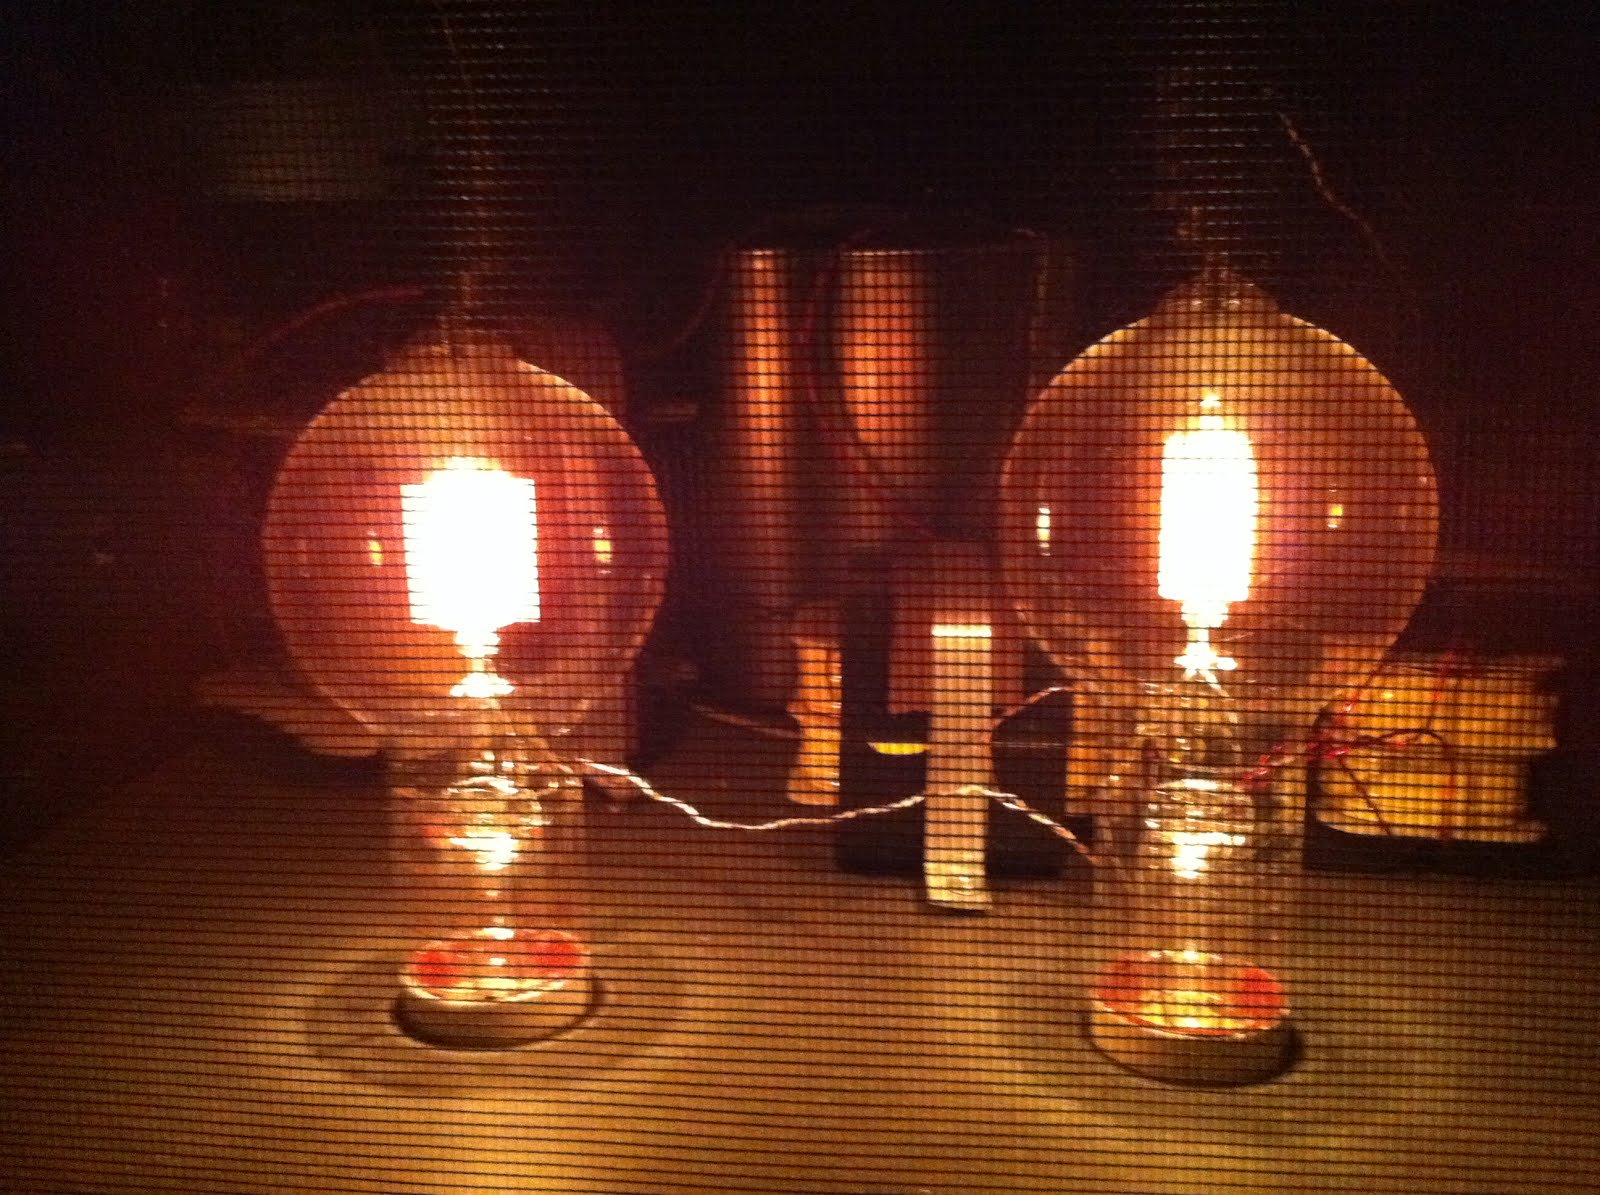 Check out the cool tube glow. The 75tl Eimac tube amps are something I could ...